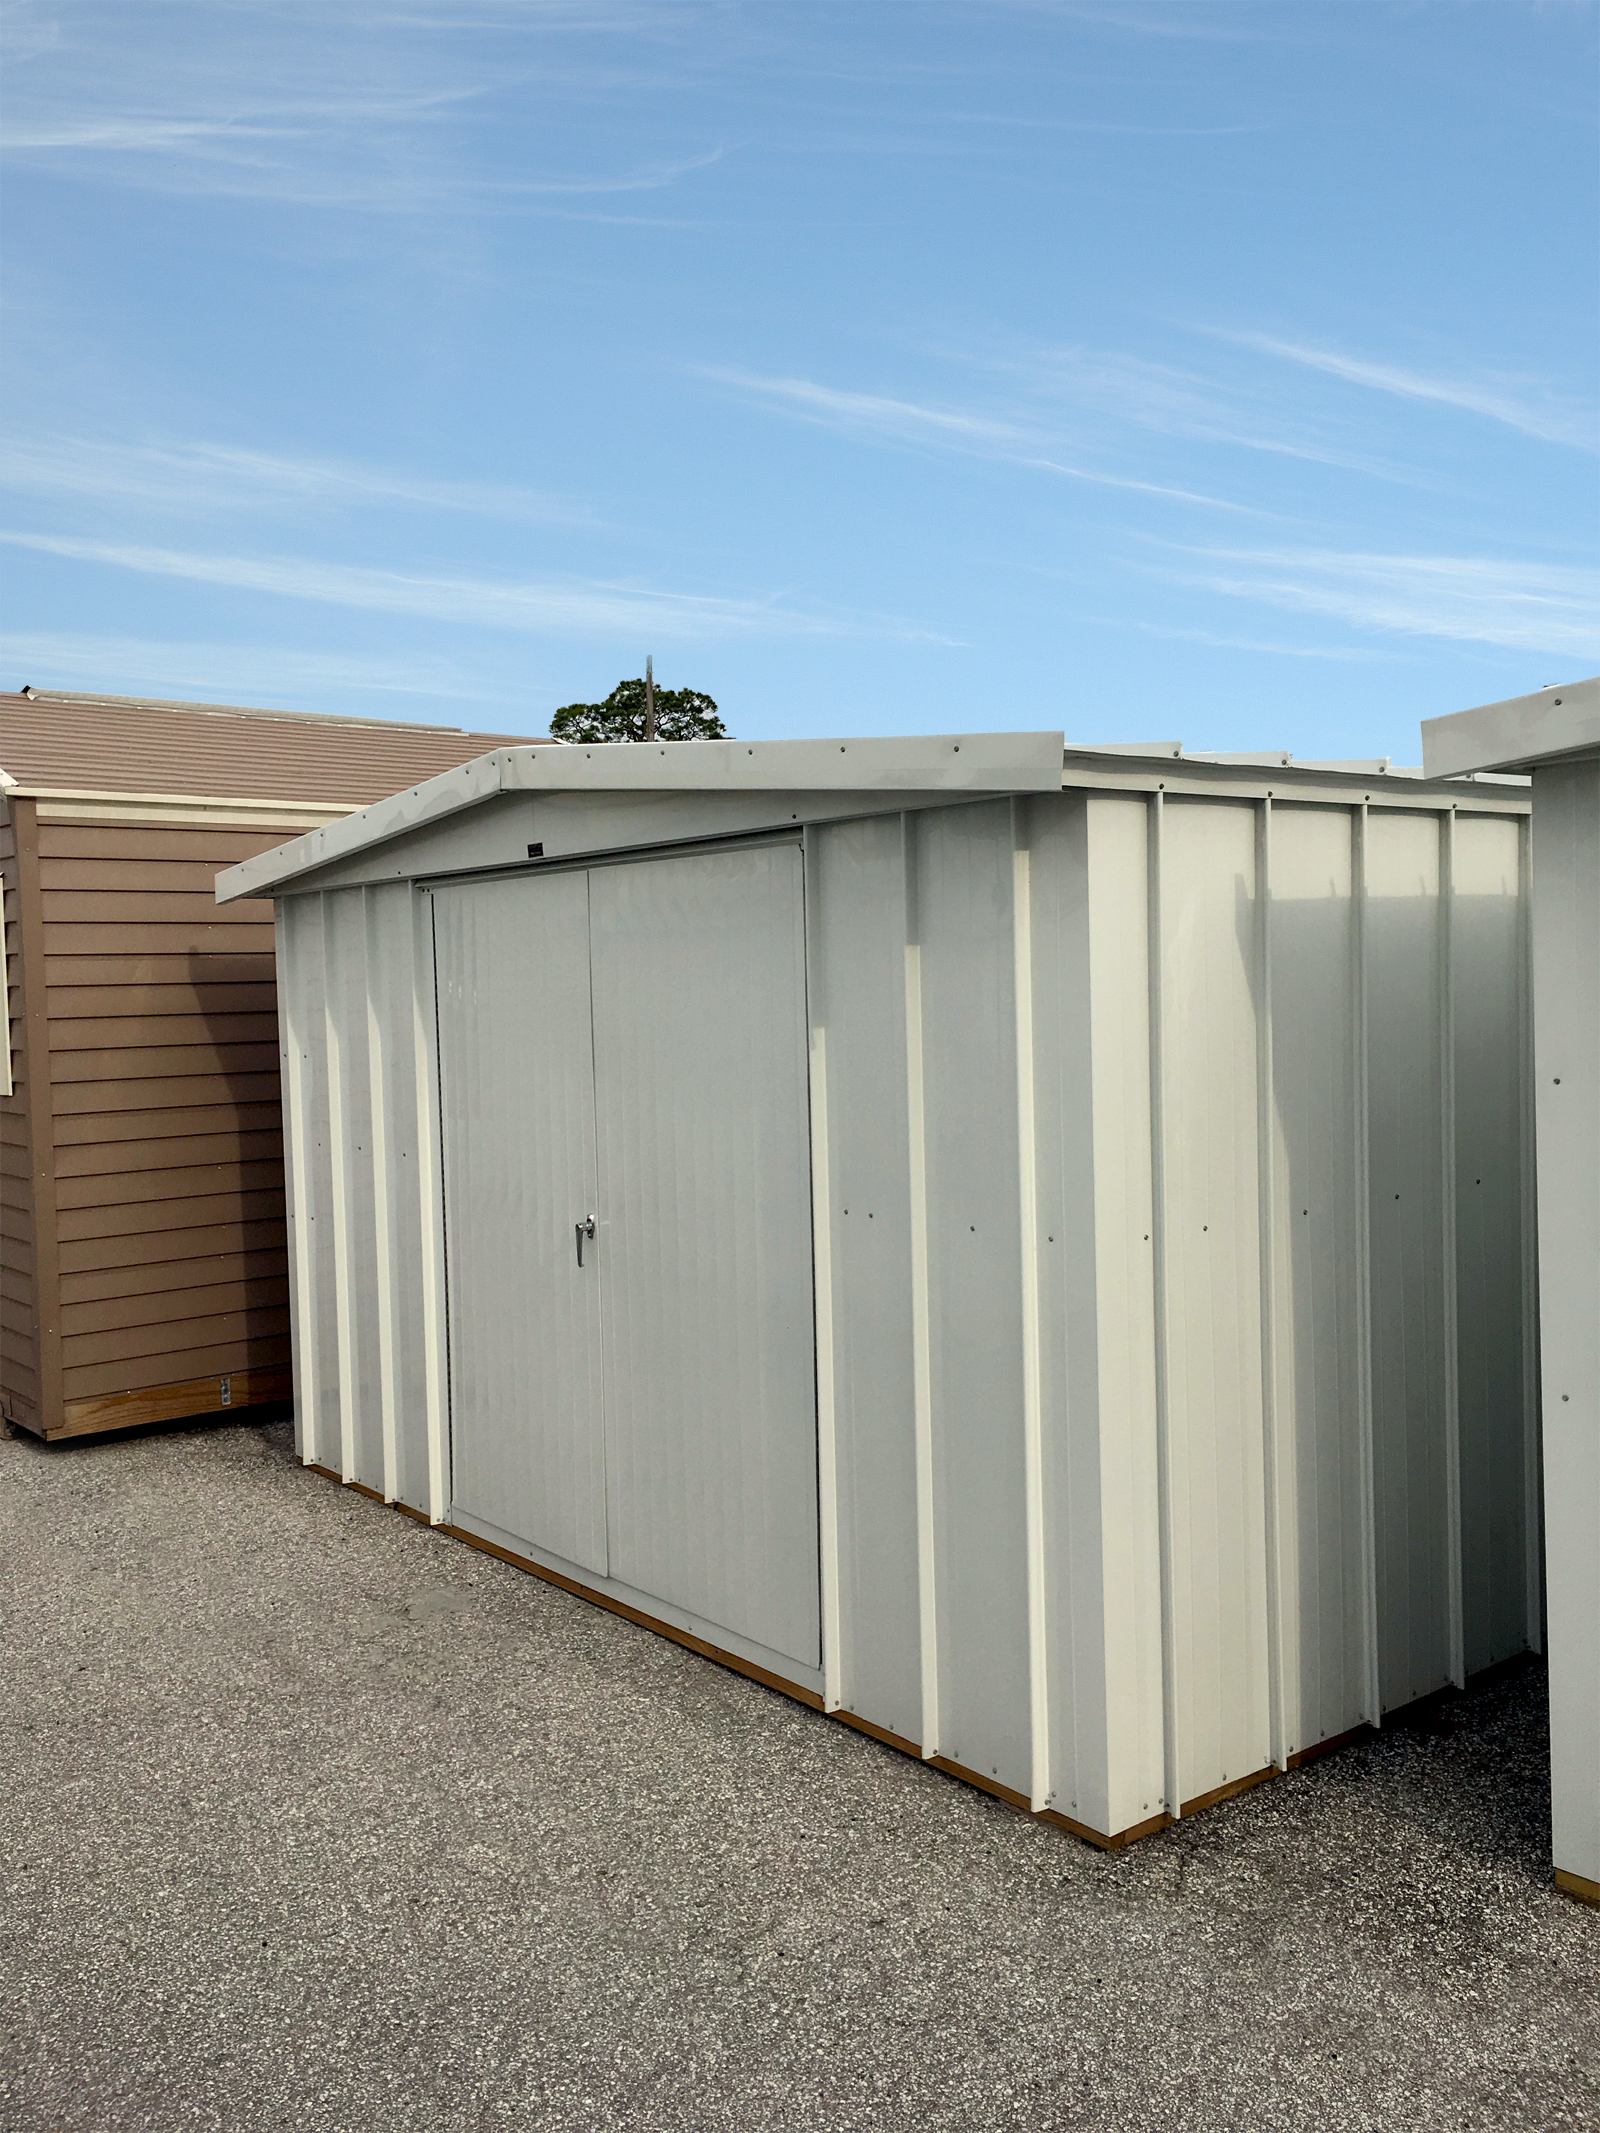 Gable roof shed wally watt for Gable shed